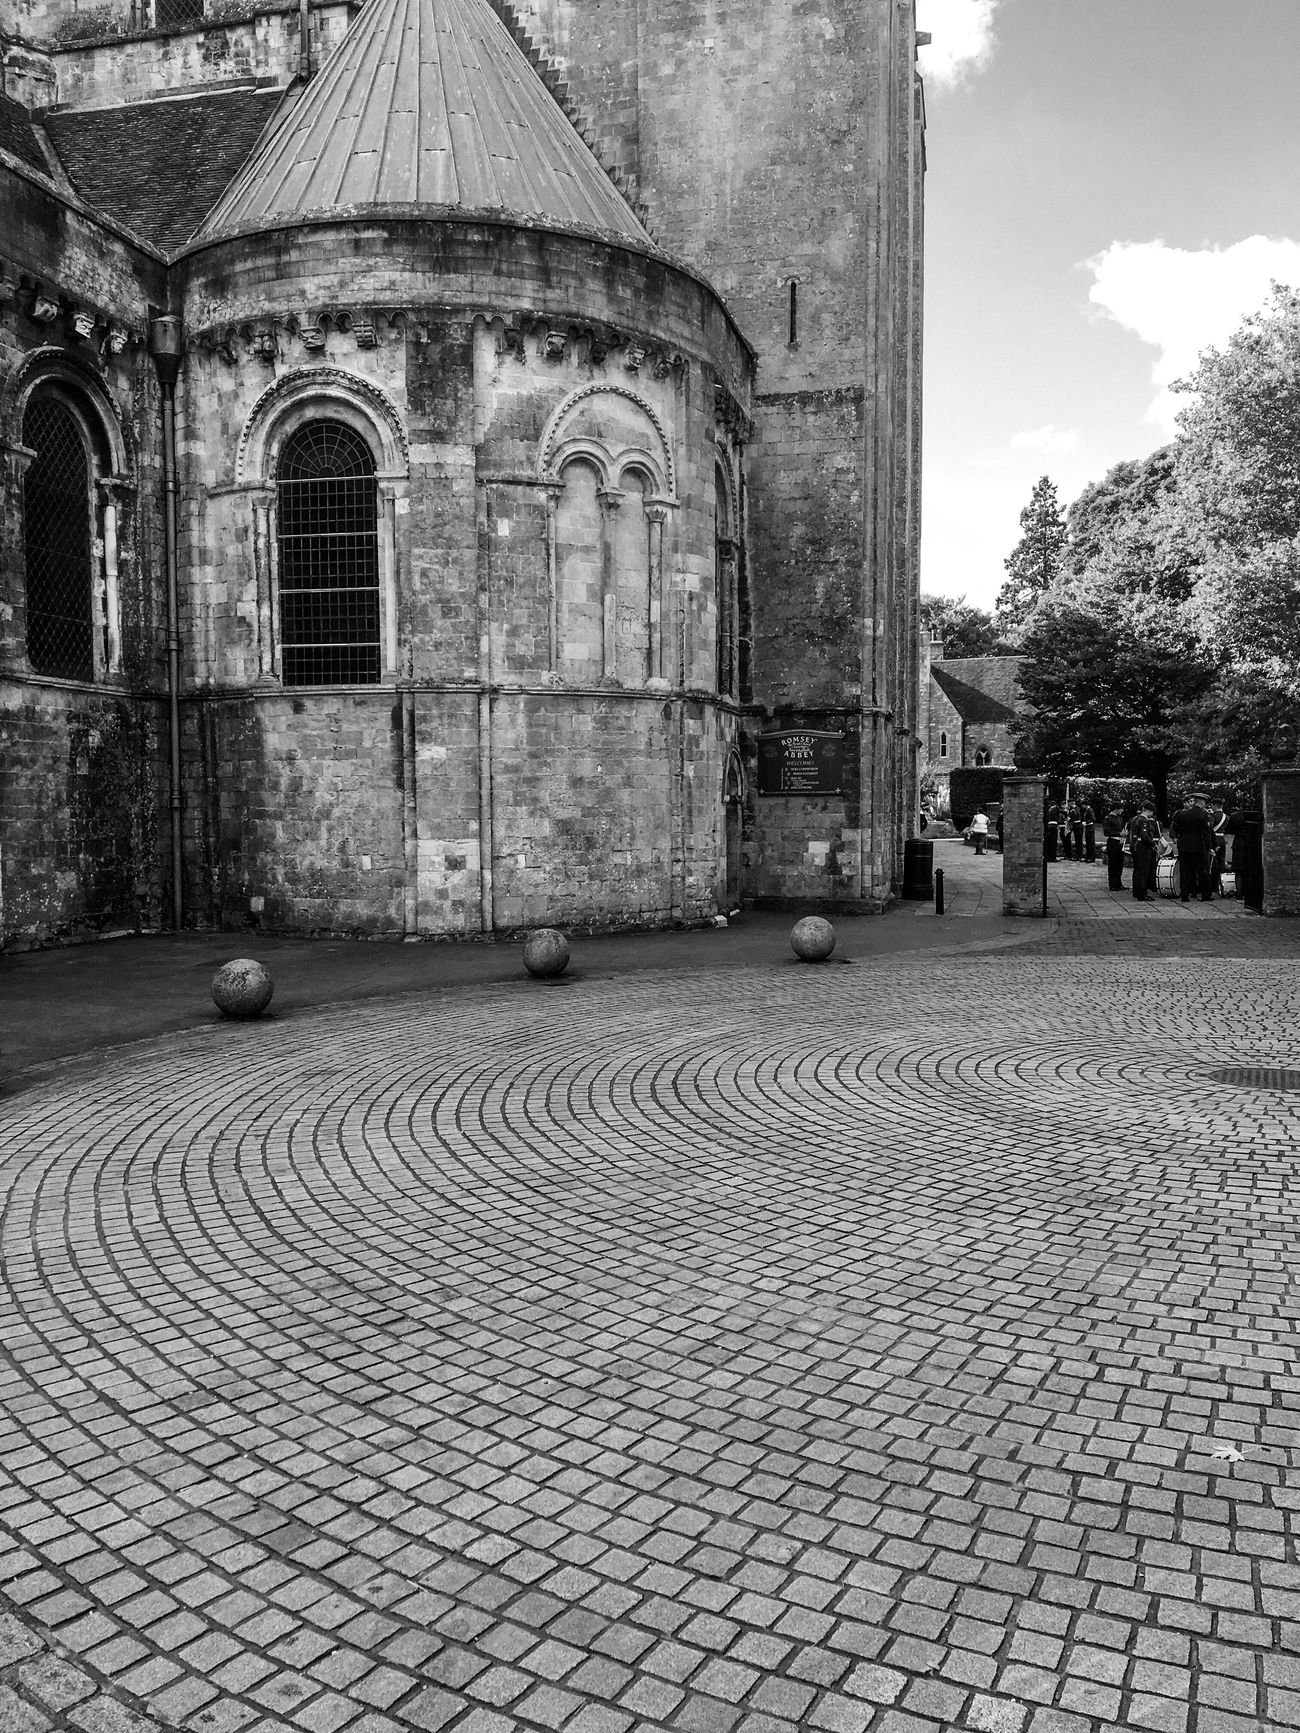 Romsey Architecture Round Bricks Blackandwhite Blackandwhite Photography Circles History Historical Building